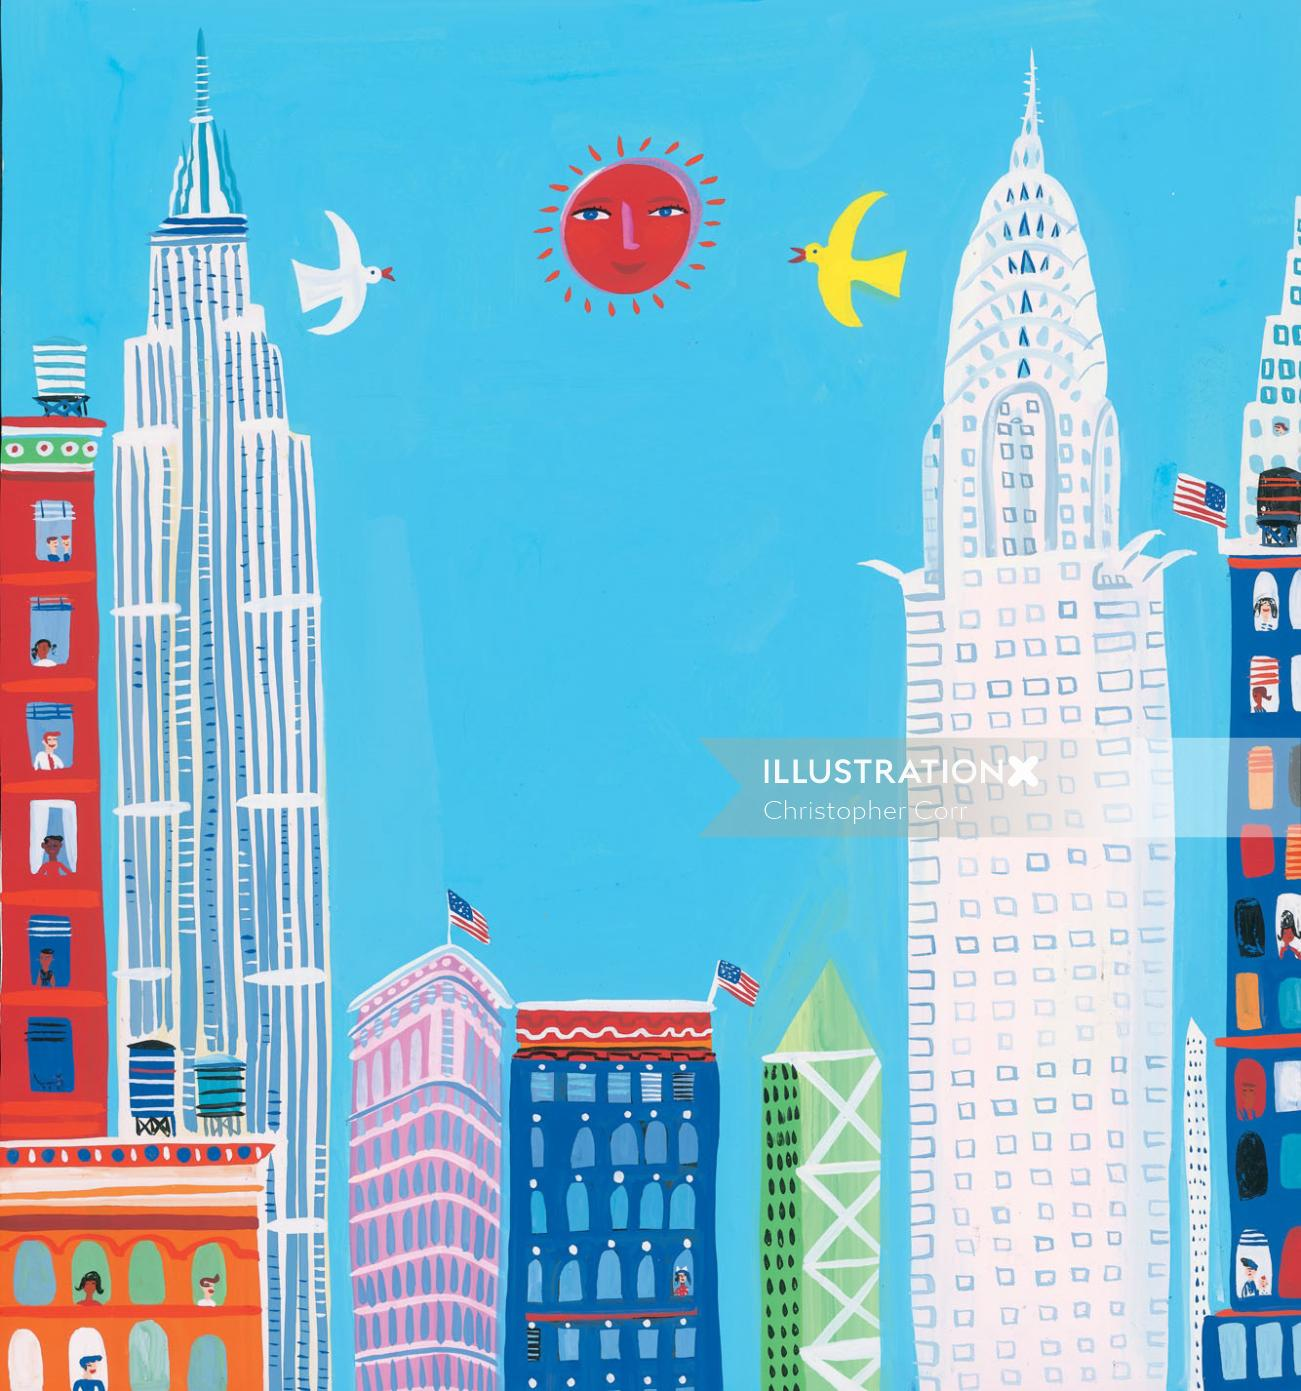 New York city illustration by Christopher Corr